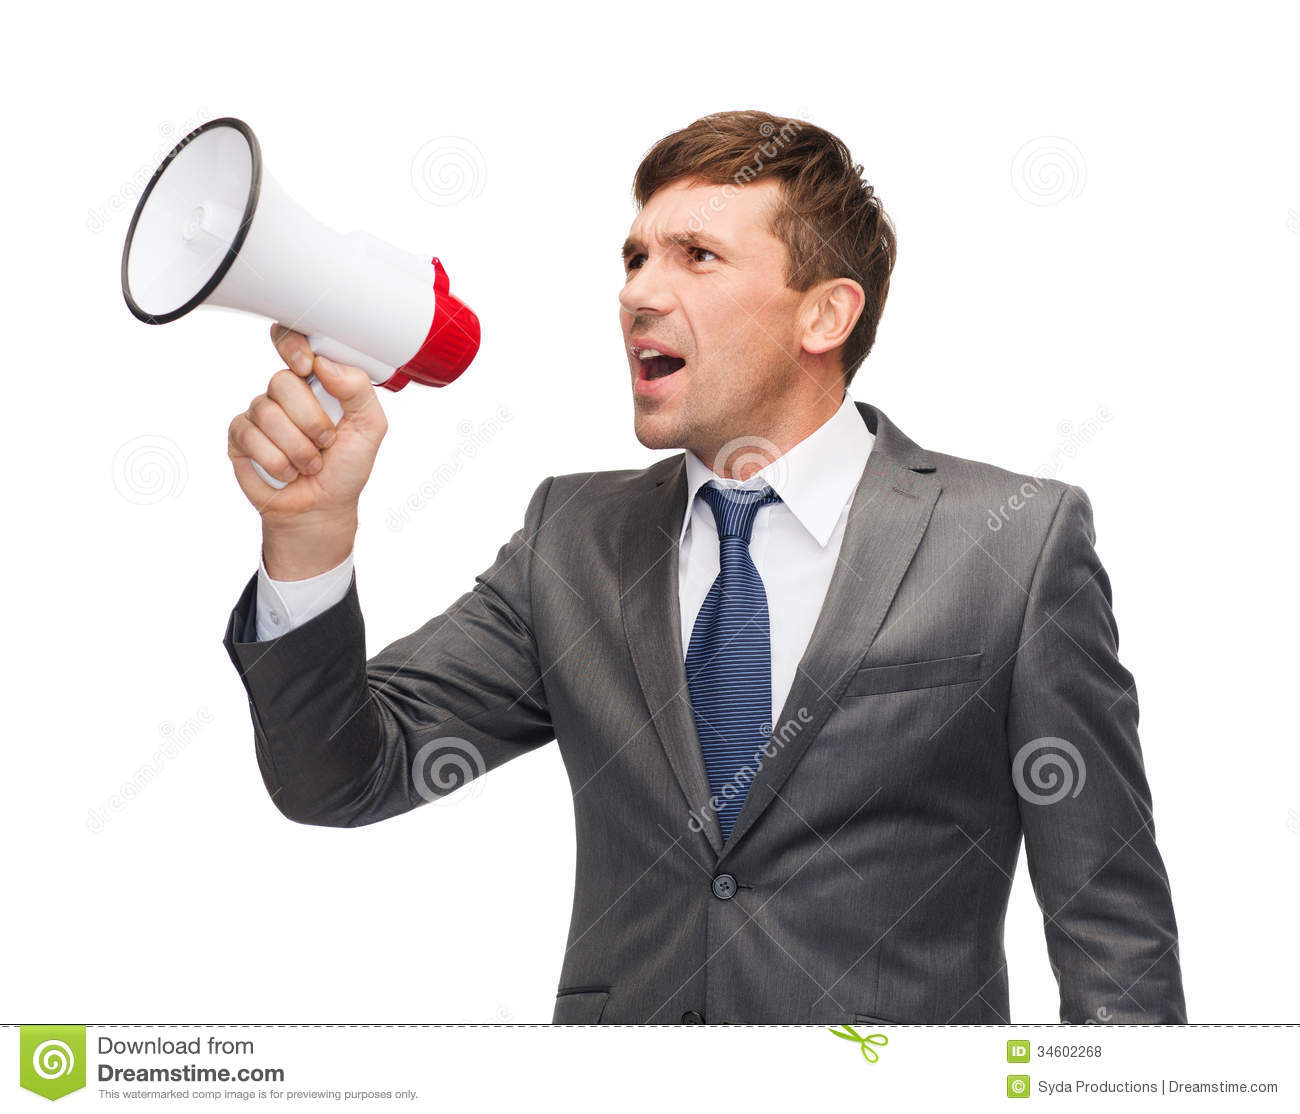 Buisnessman with bullhorn or megaphone